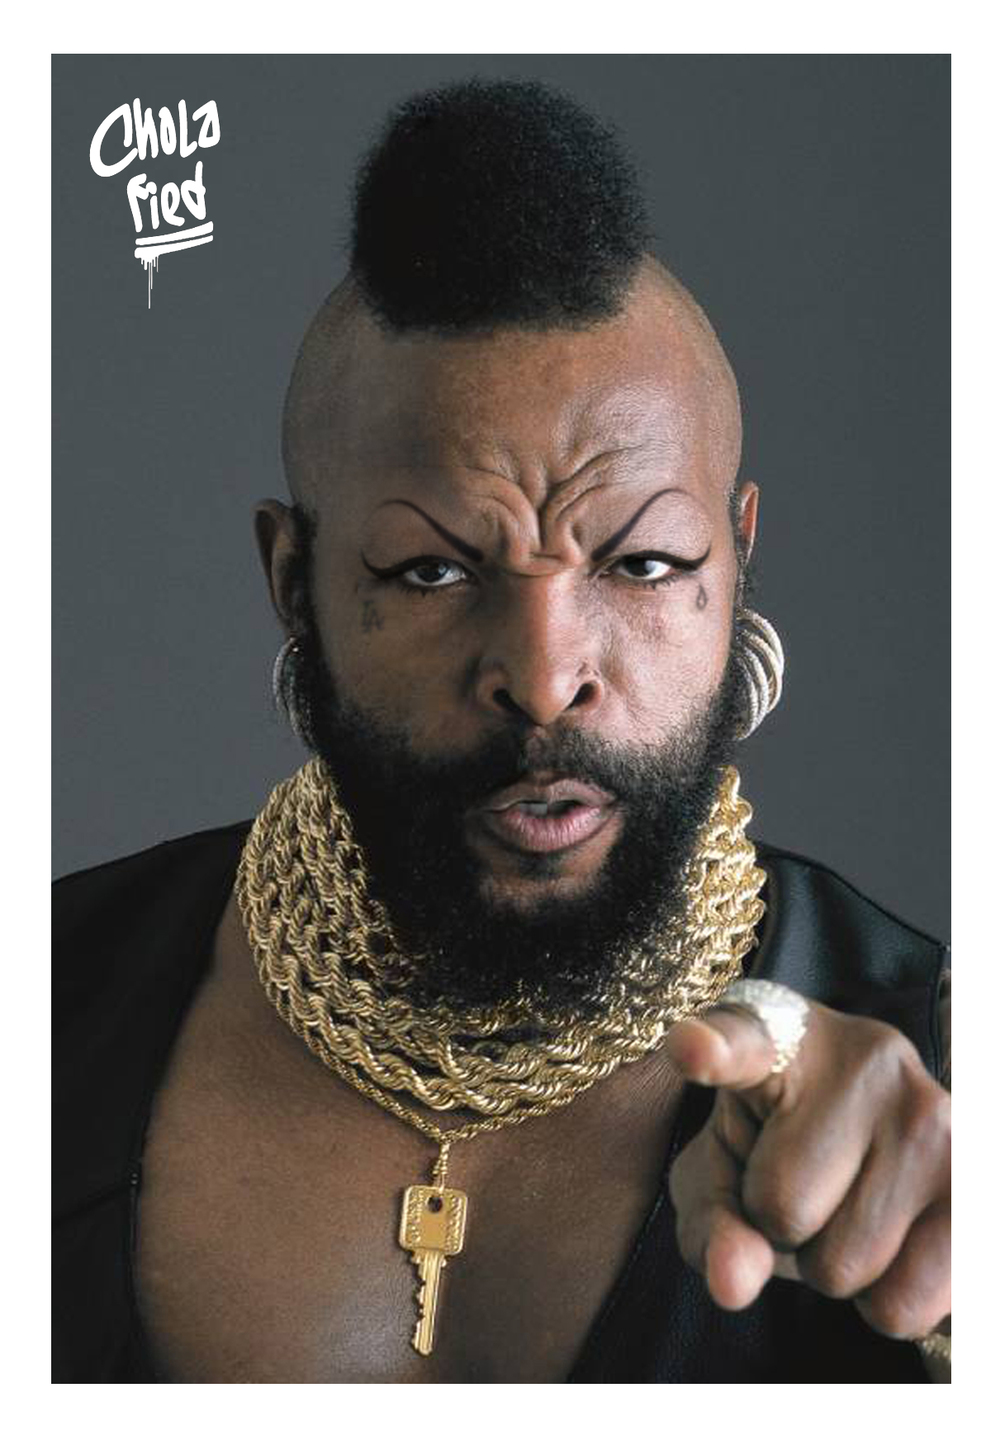 i pity the fool with no hoop earings